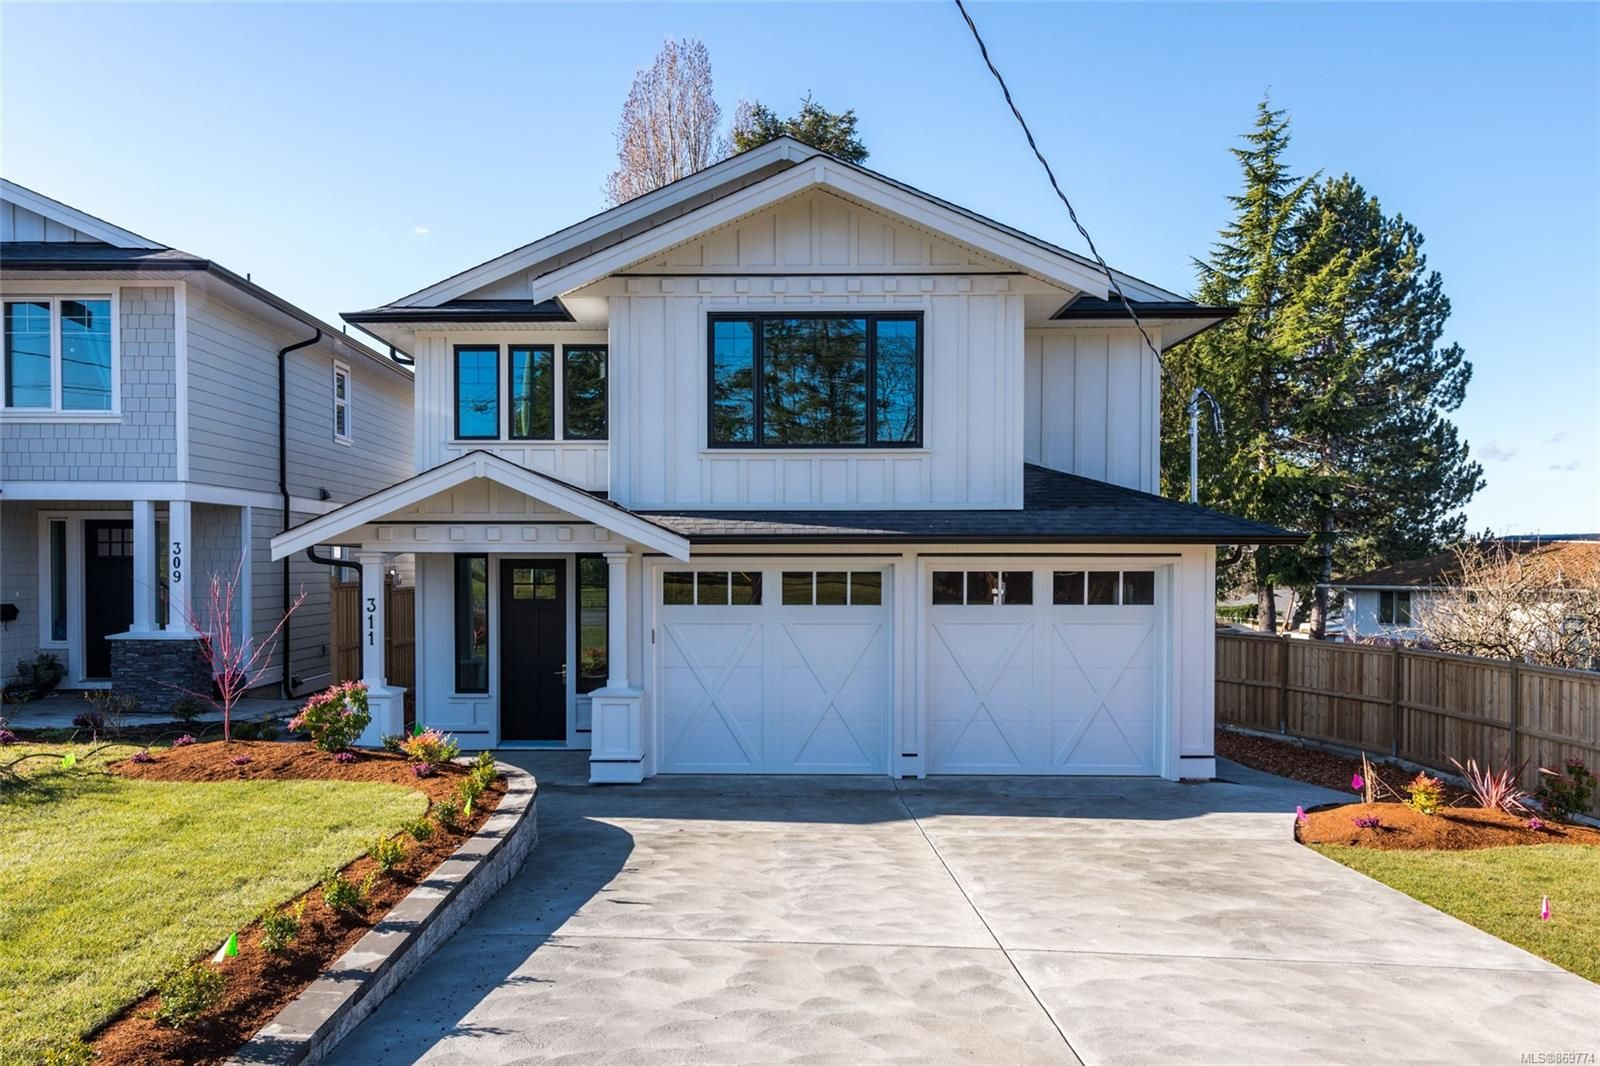 Main Photo: 311 Cadillac Ave in : SW Tillicum House for sale (Saanich West)  : MLS®# 869774